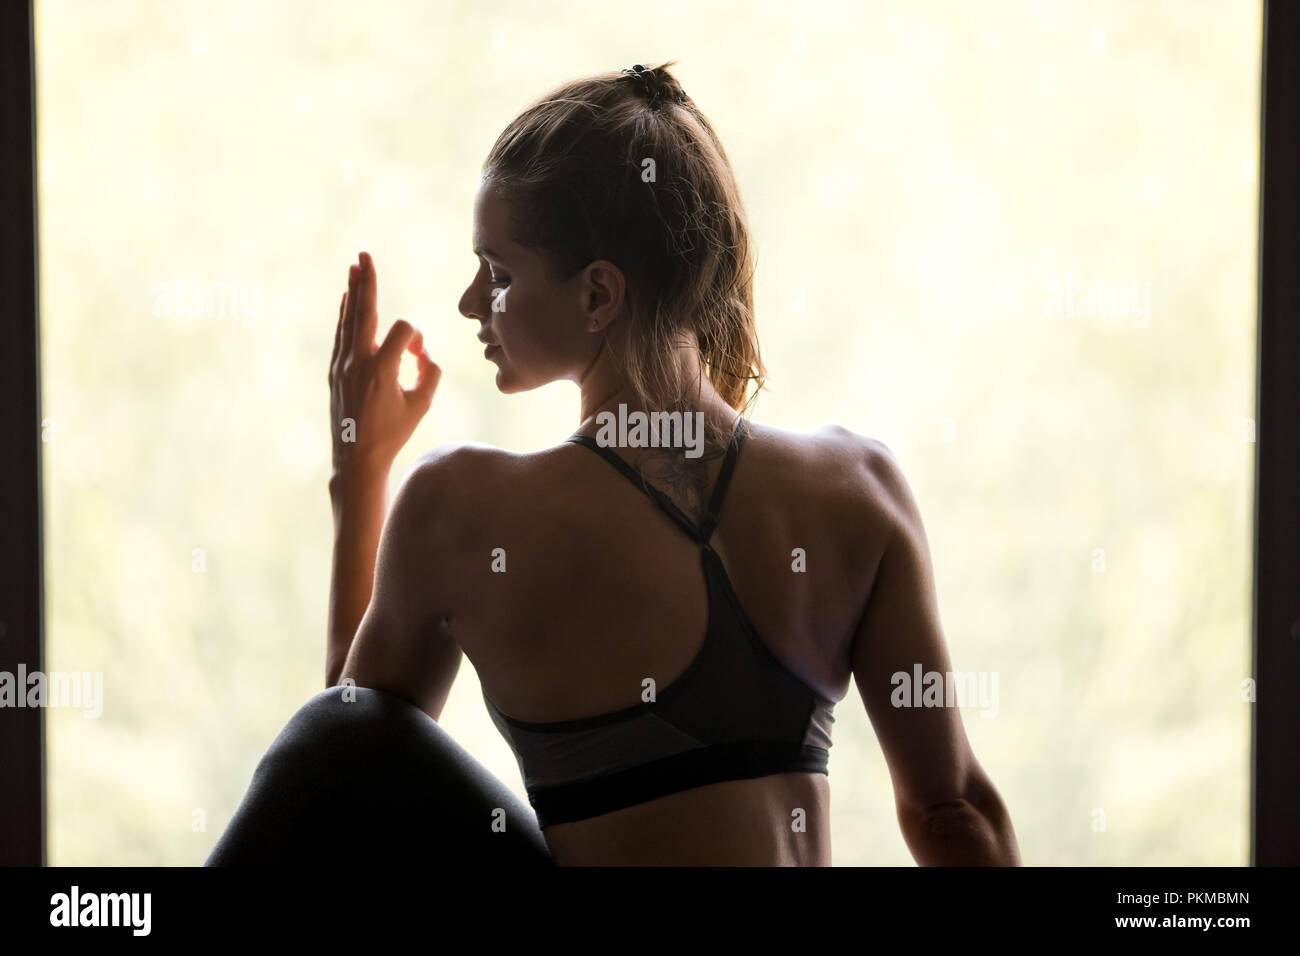 Young sporty woman in Ardha Matsyendrasana pose, close up - Stock Image